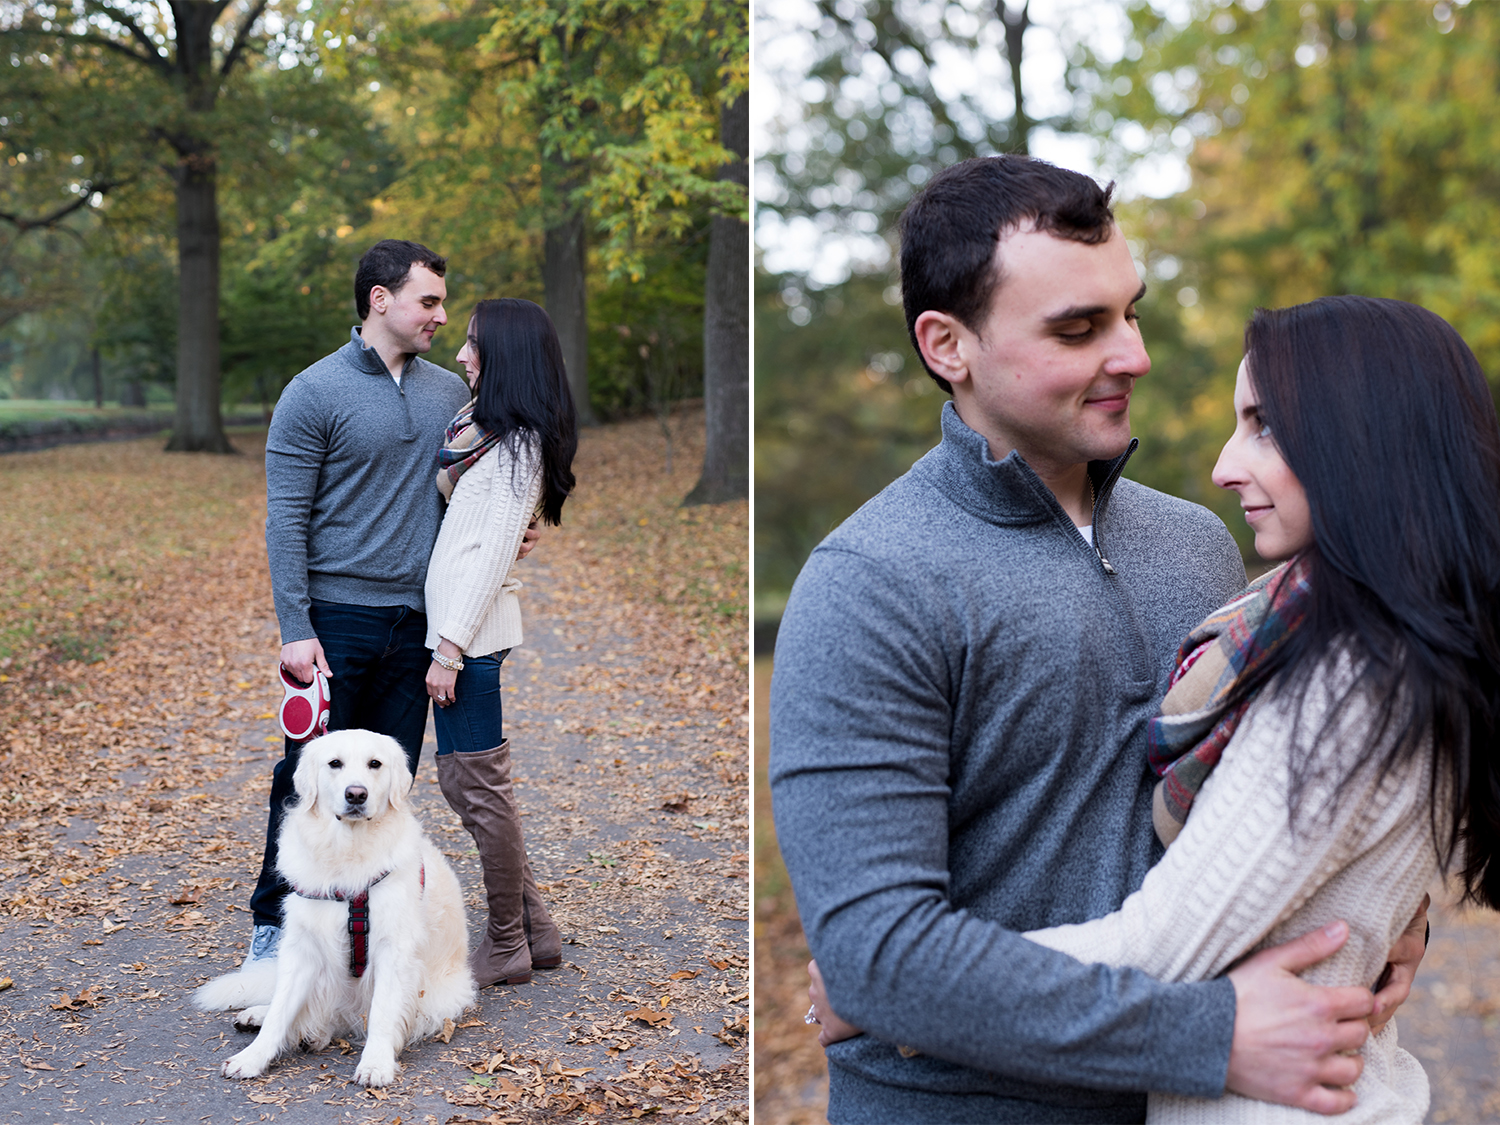 Melissa+Jeff- Local Park Engagement Session with Dog- Booth Park Nutley- New Jersey-Olivia Christina Photo 1.jpg